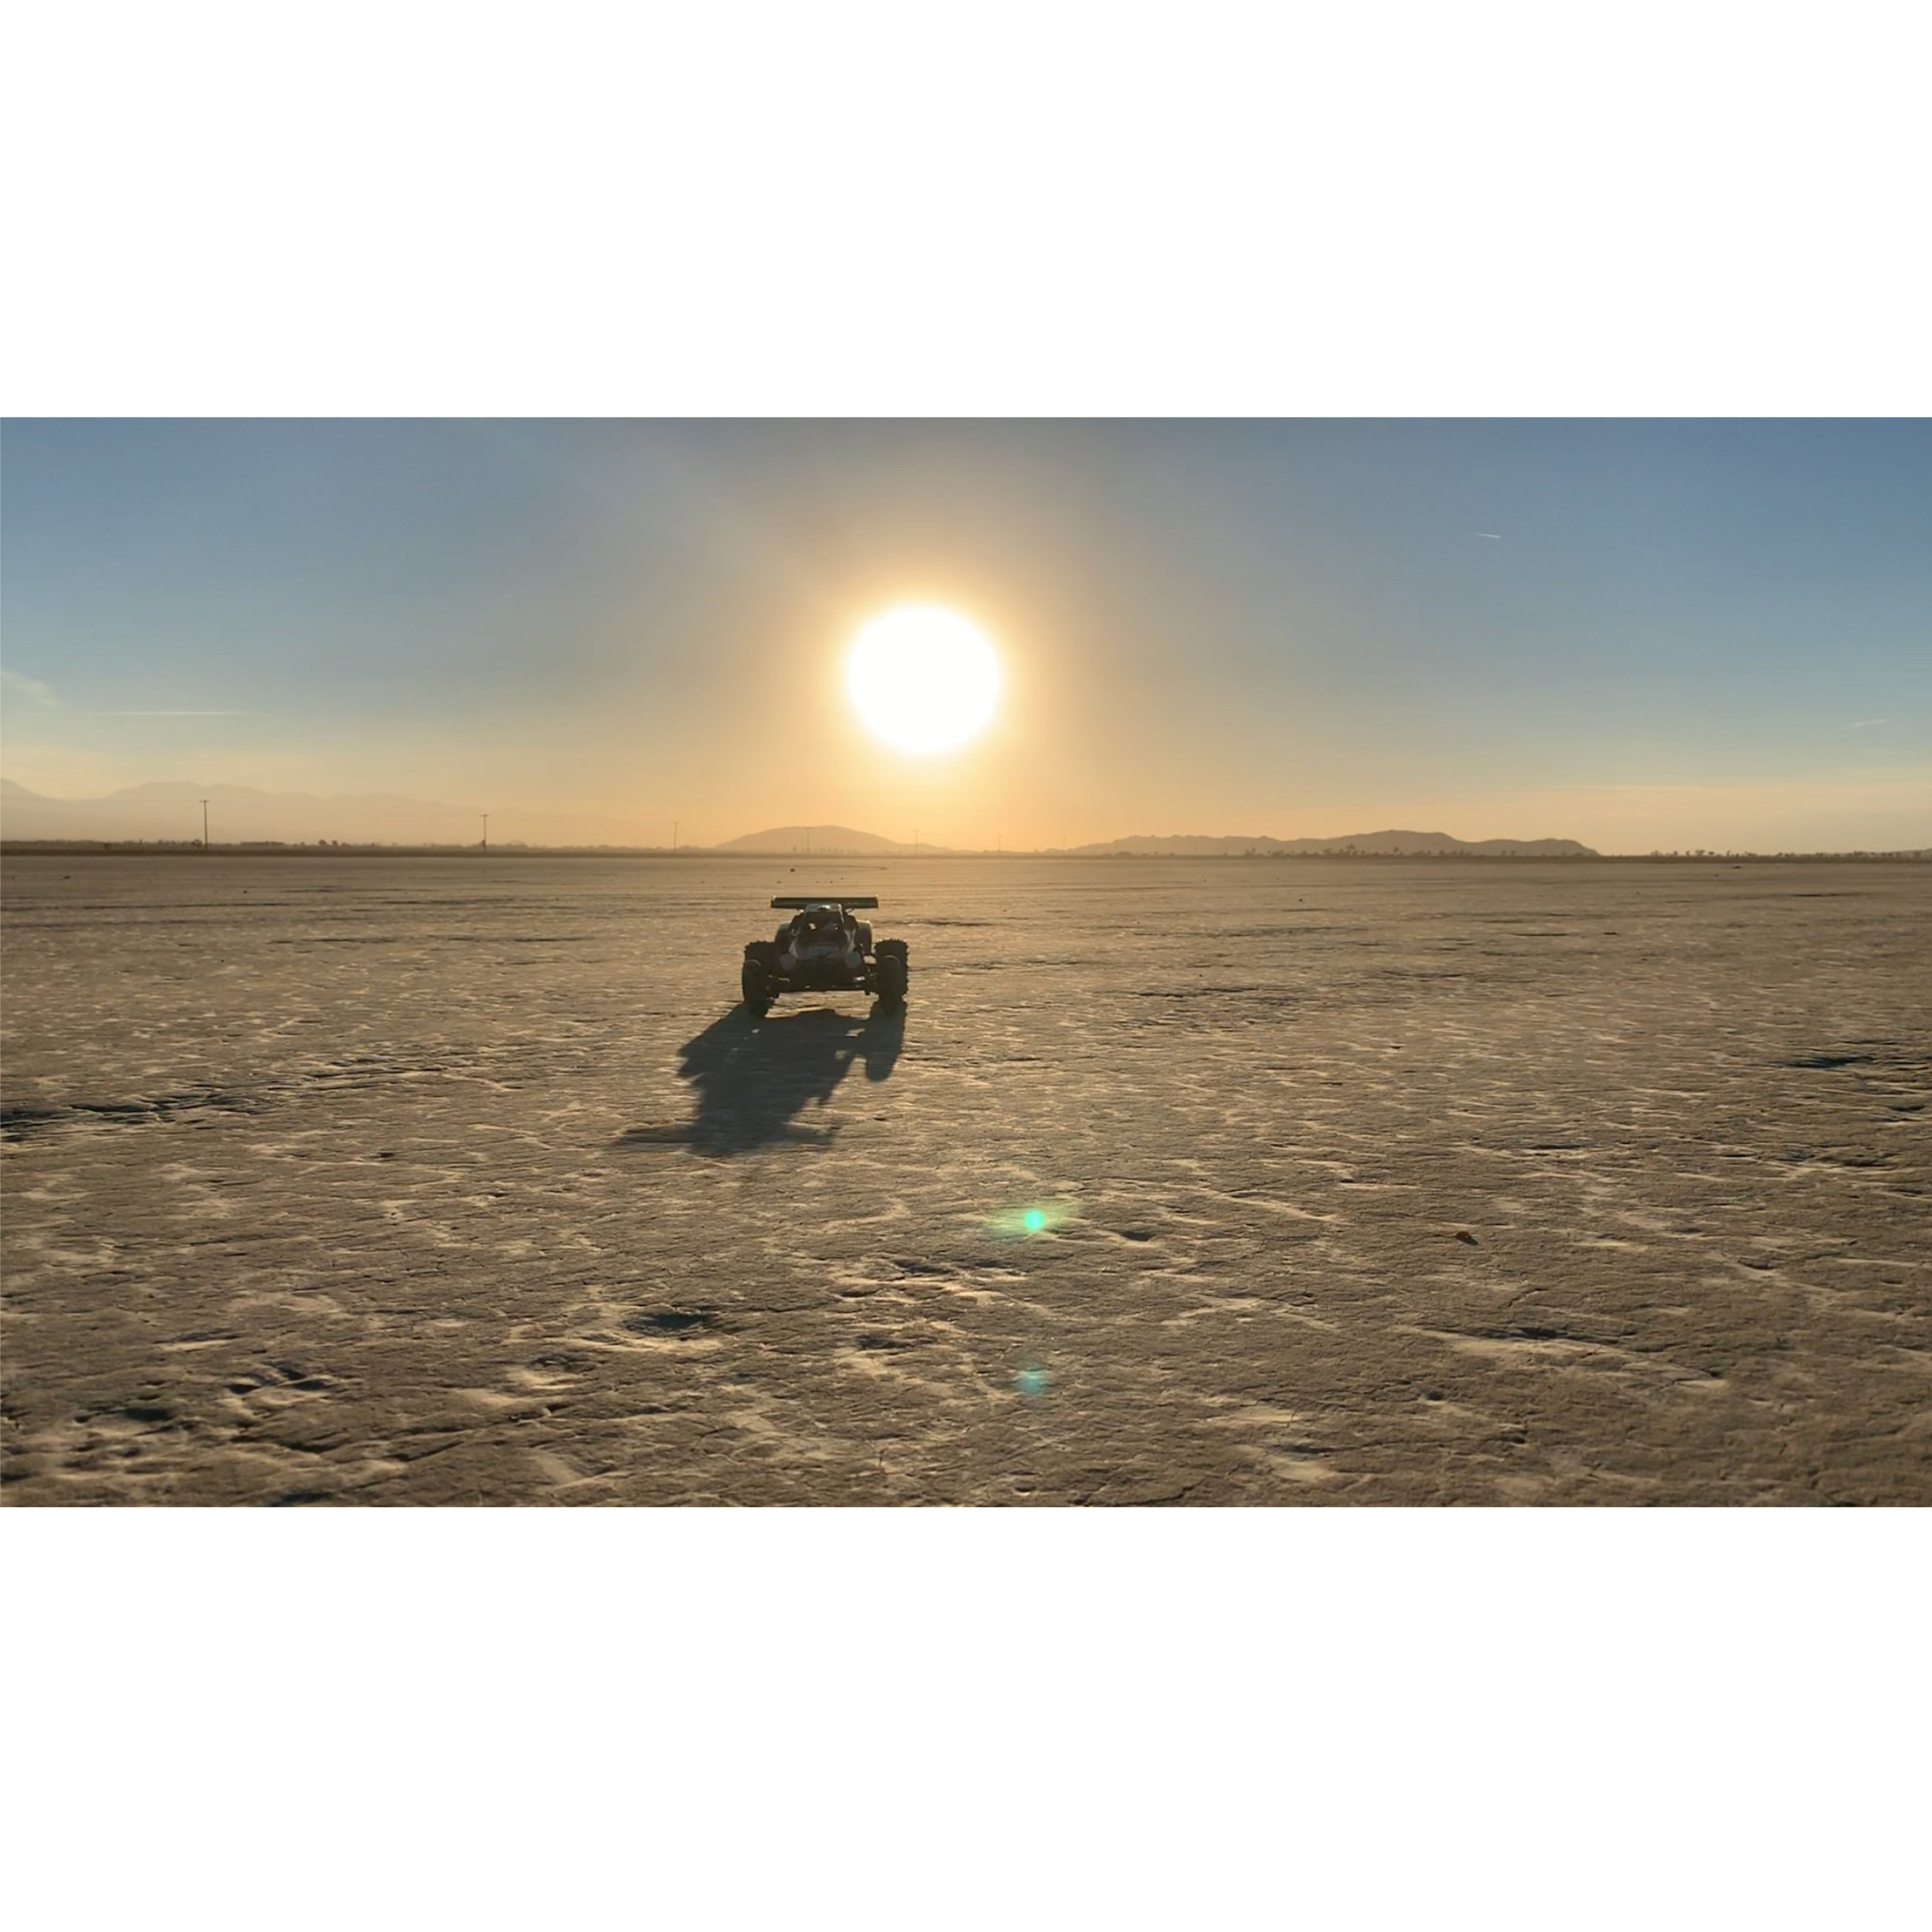 / - Instagram video for Supreme using a Tamiya Hornet. Driving it around the El Mirage dry lake bed at sunset was buzzing.